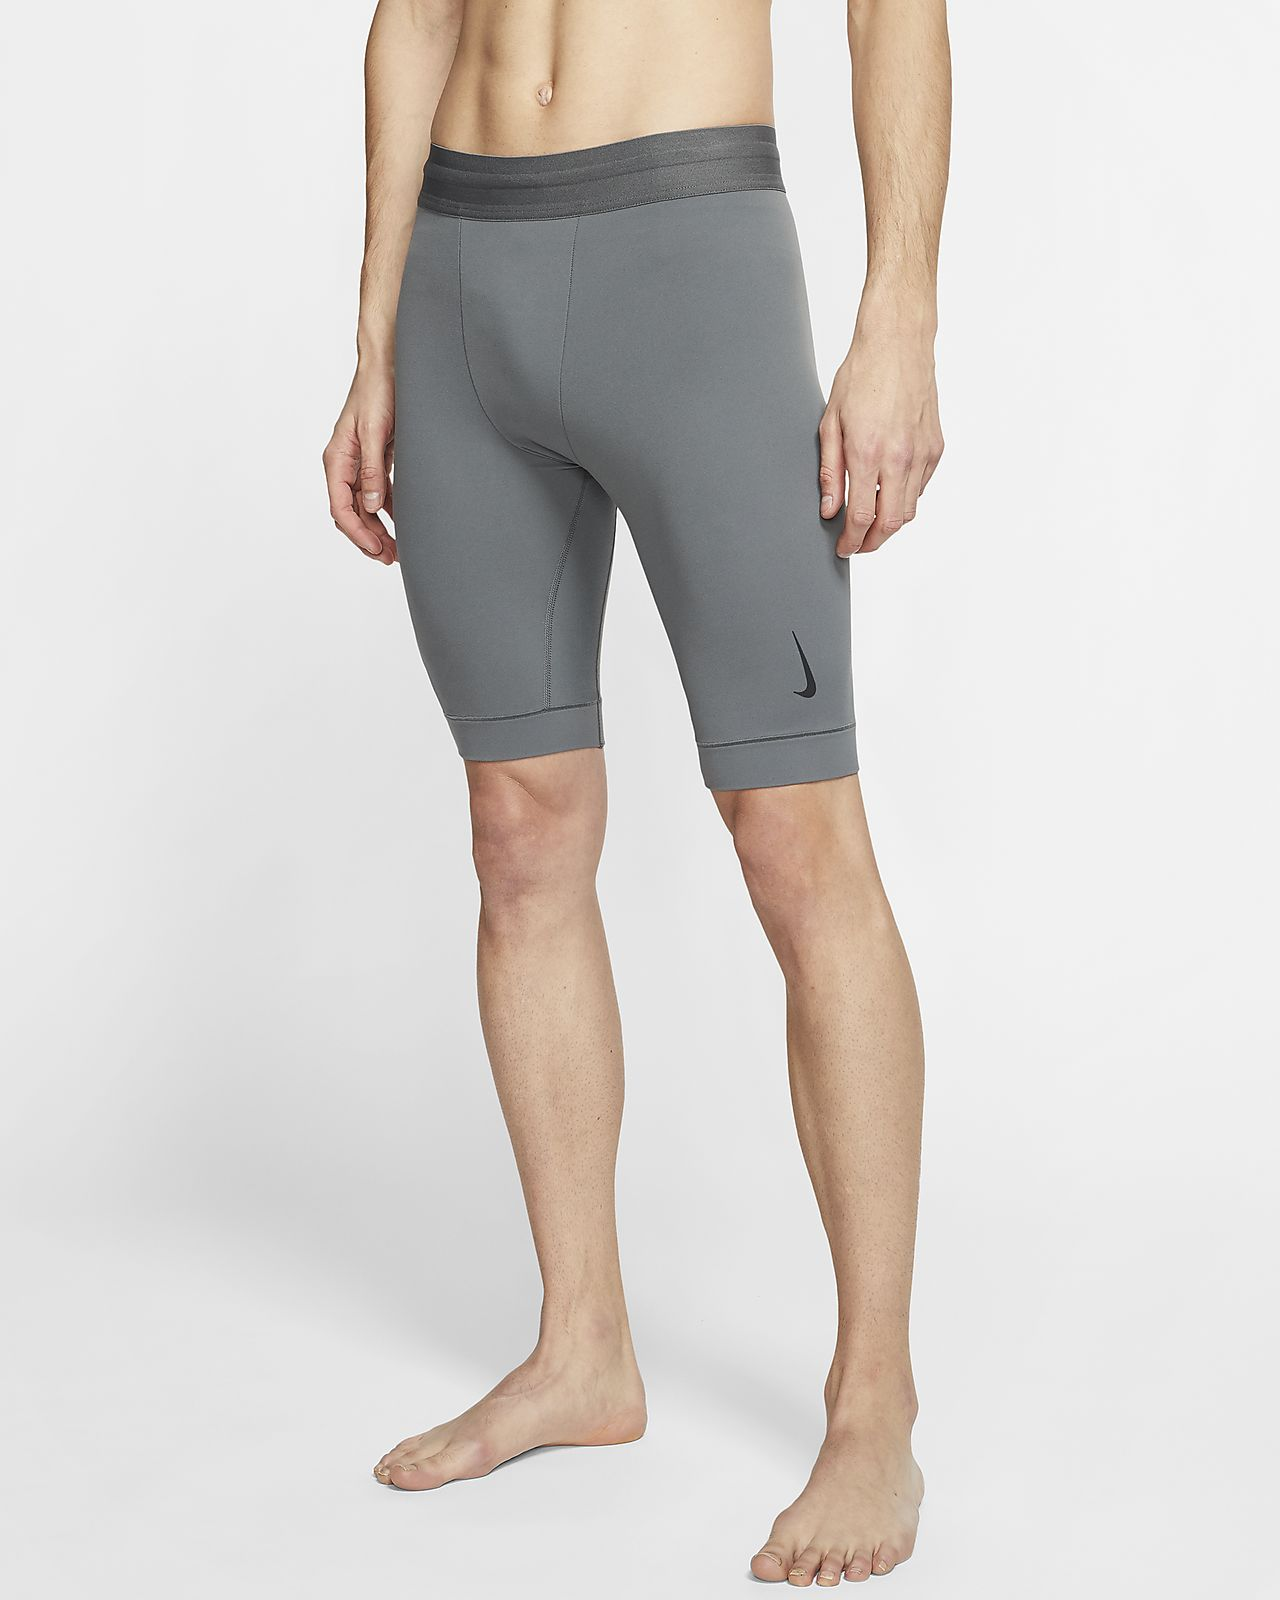 Nike Yoga Infinalon Dri-FIT Herrenshorts